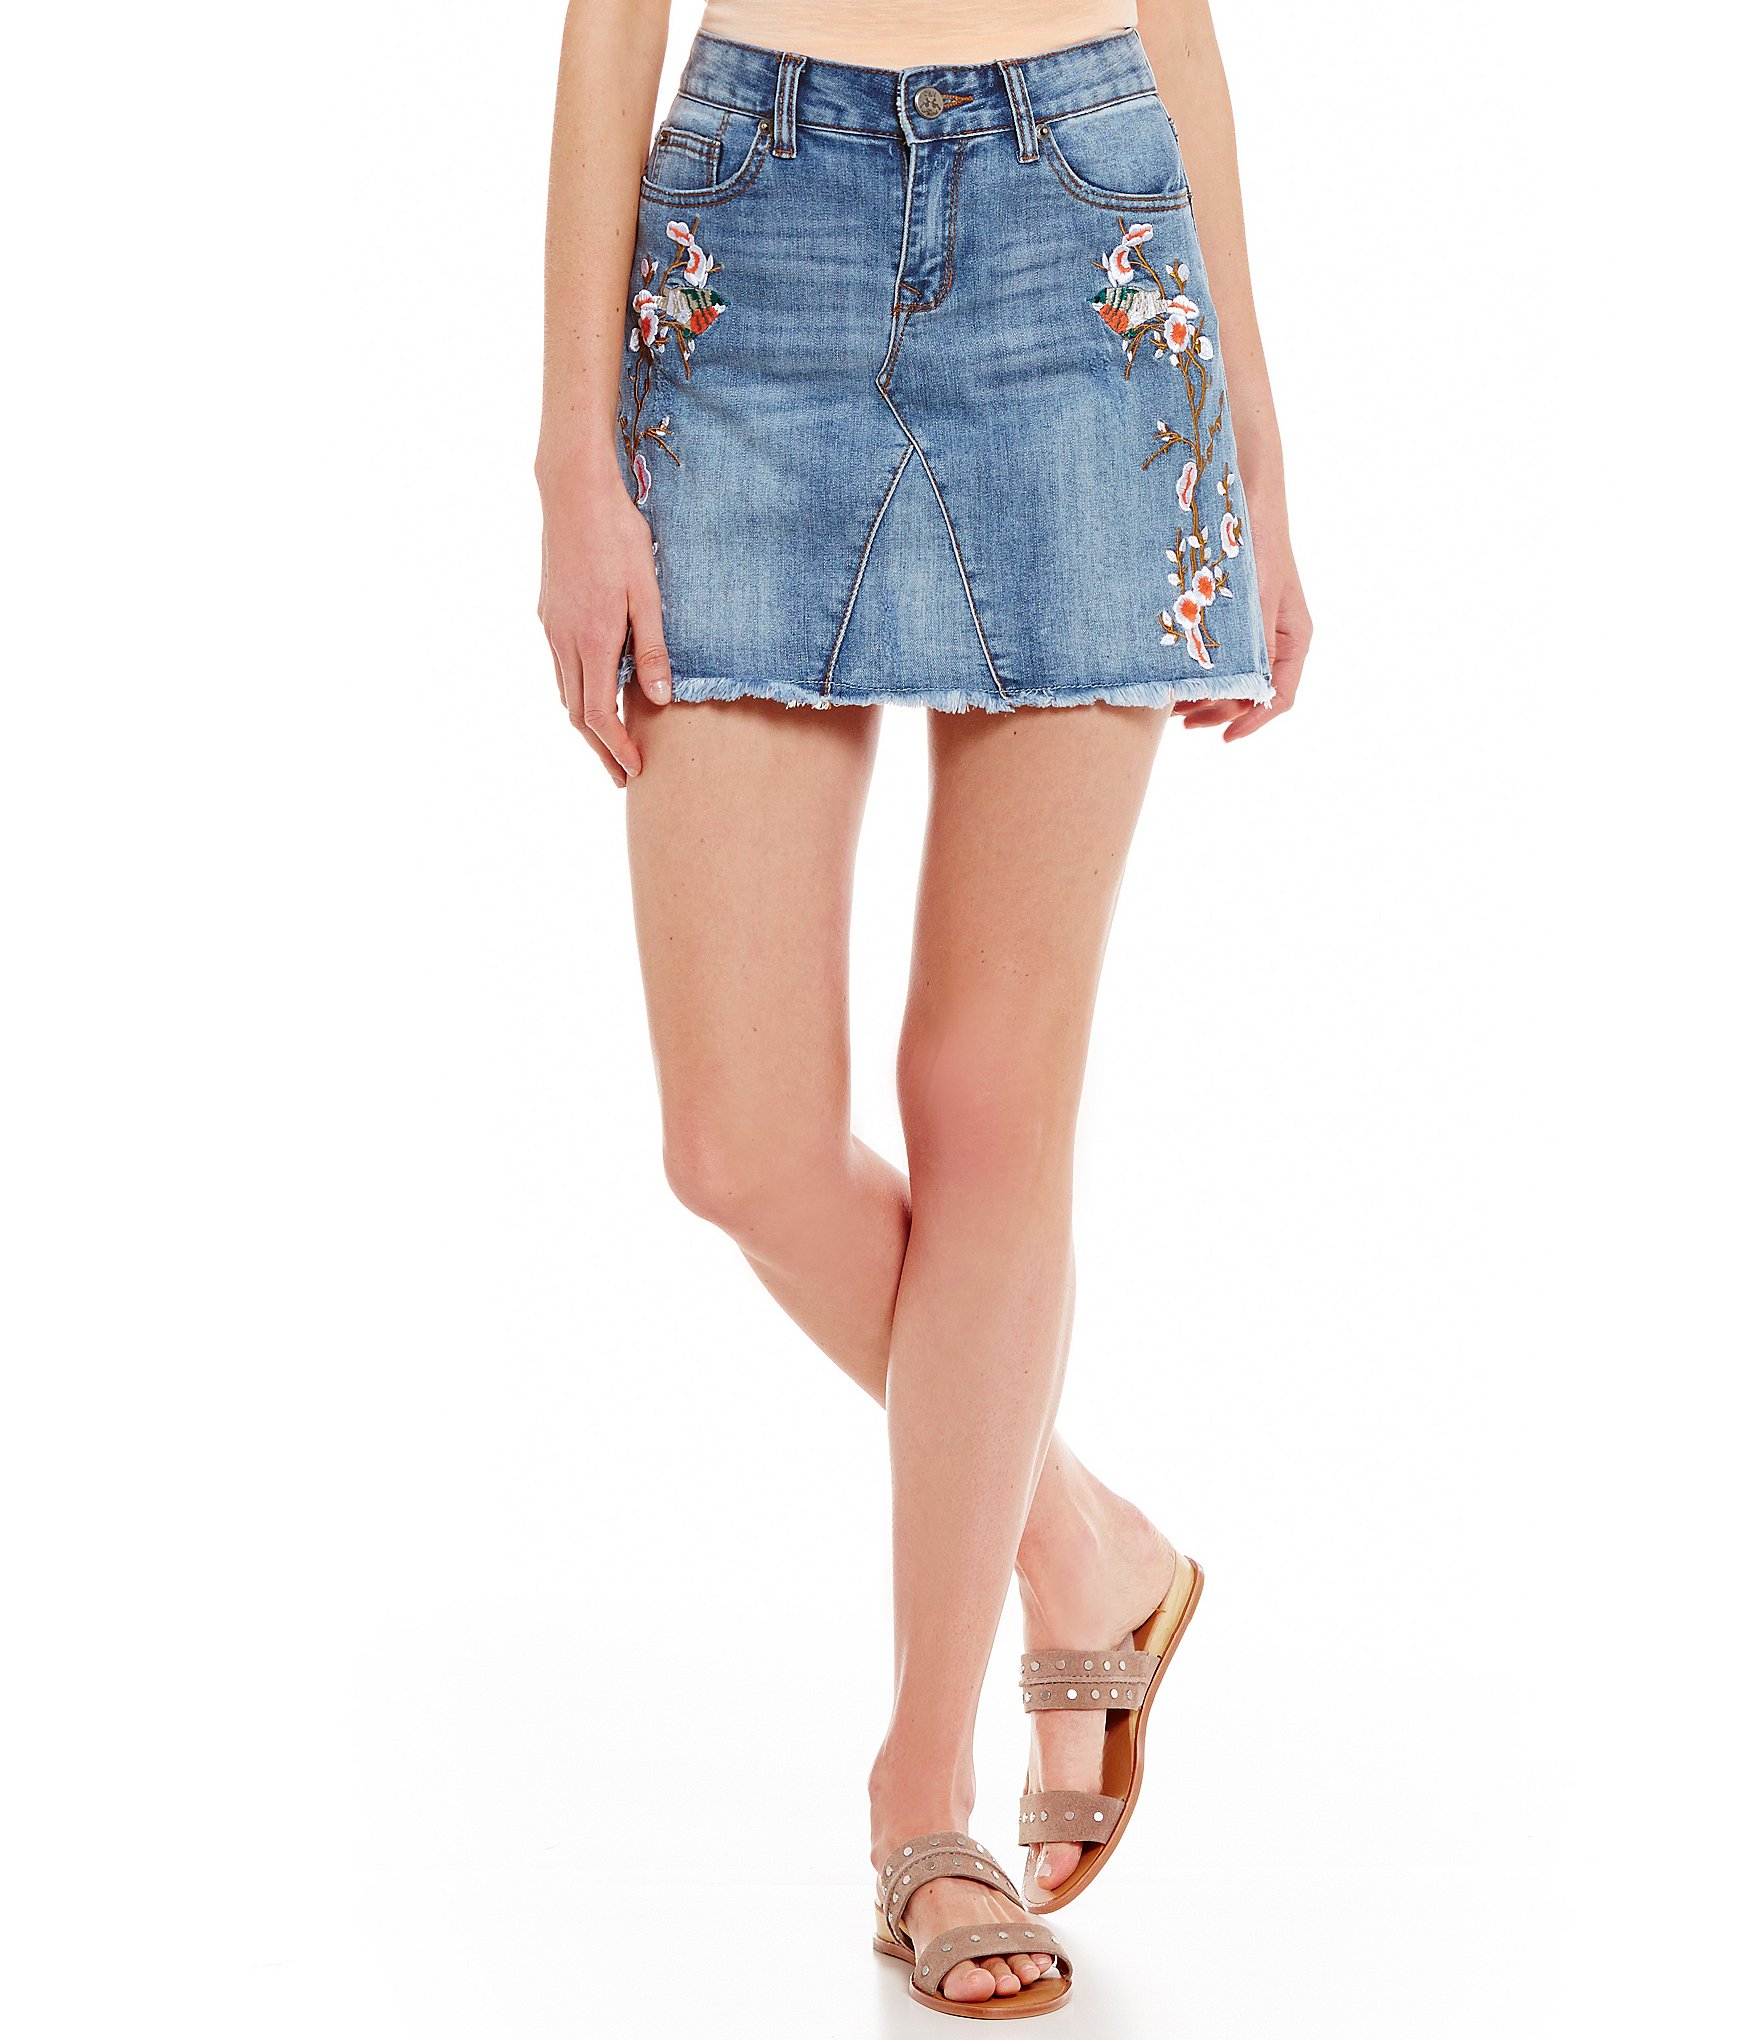 Chelsea & Violet Floral Embroidered Denim Skirt | Dillards